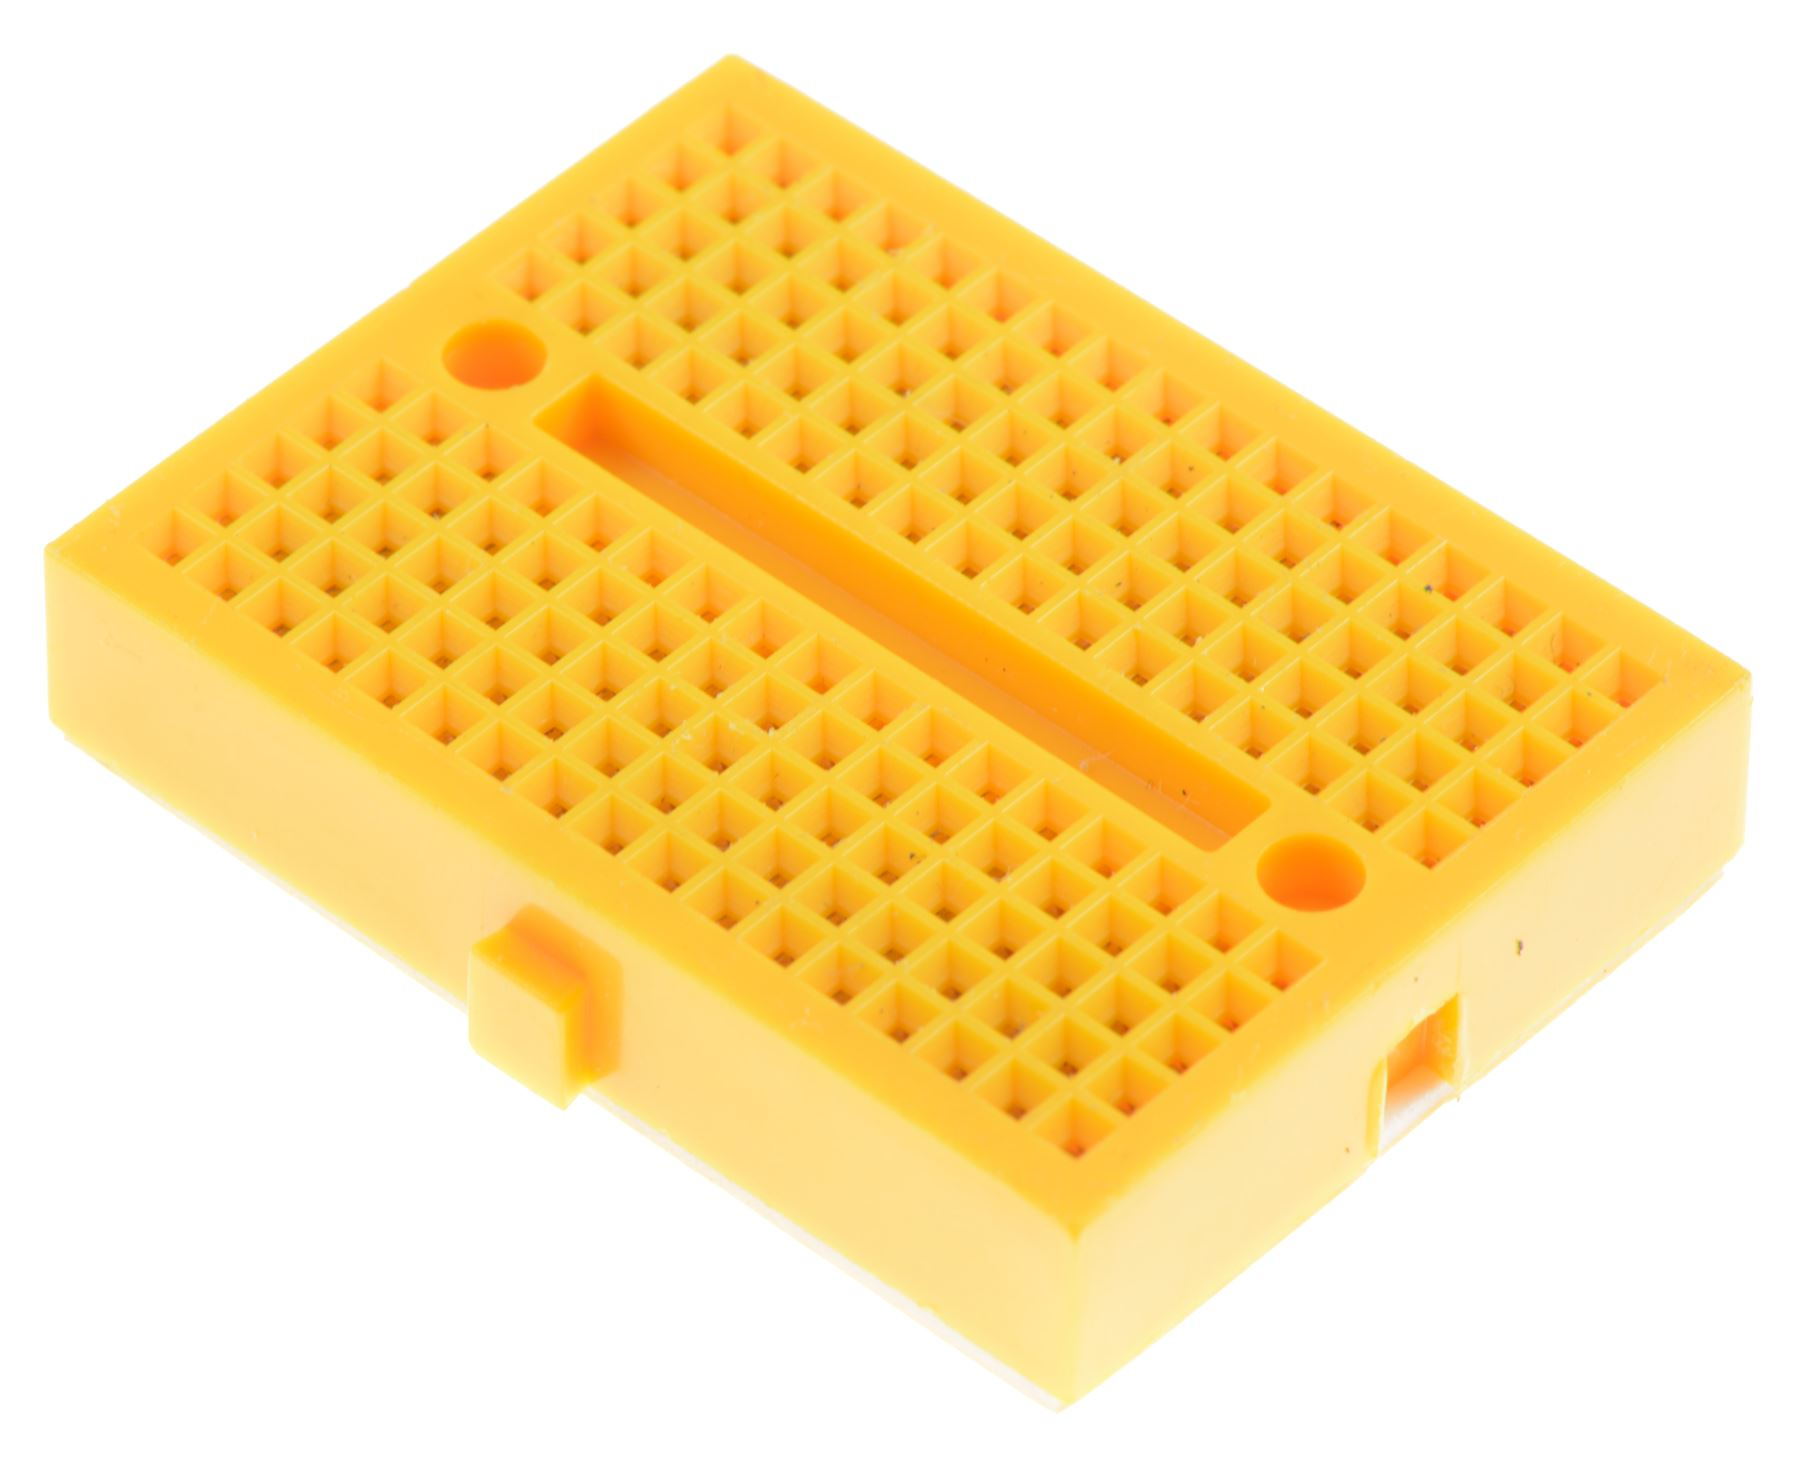 Solderless-Prototype-PCB-Breadboard-with-65pcs-Jumper-Leads-Wires